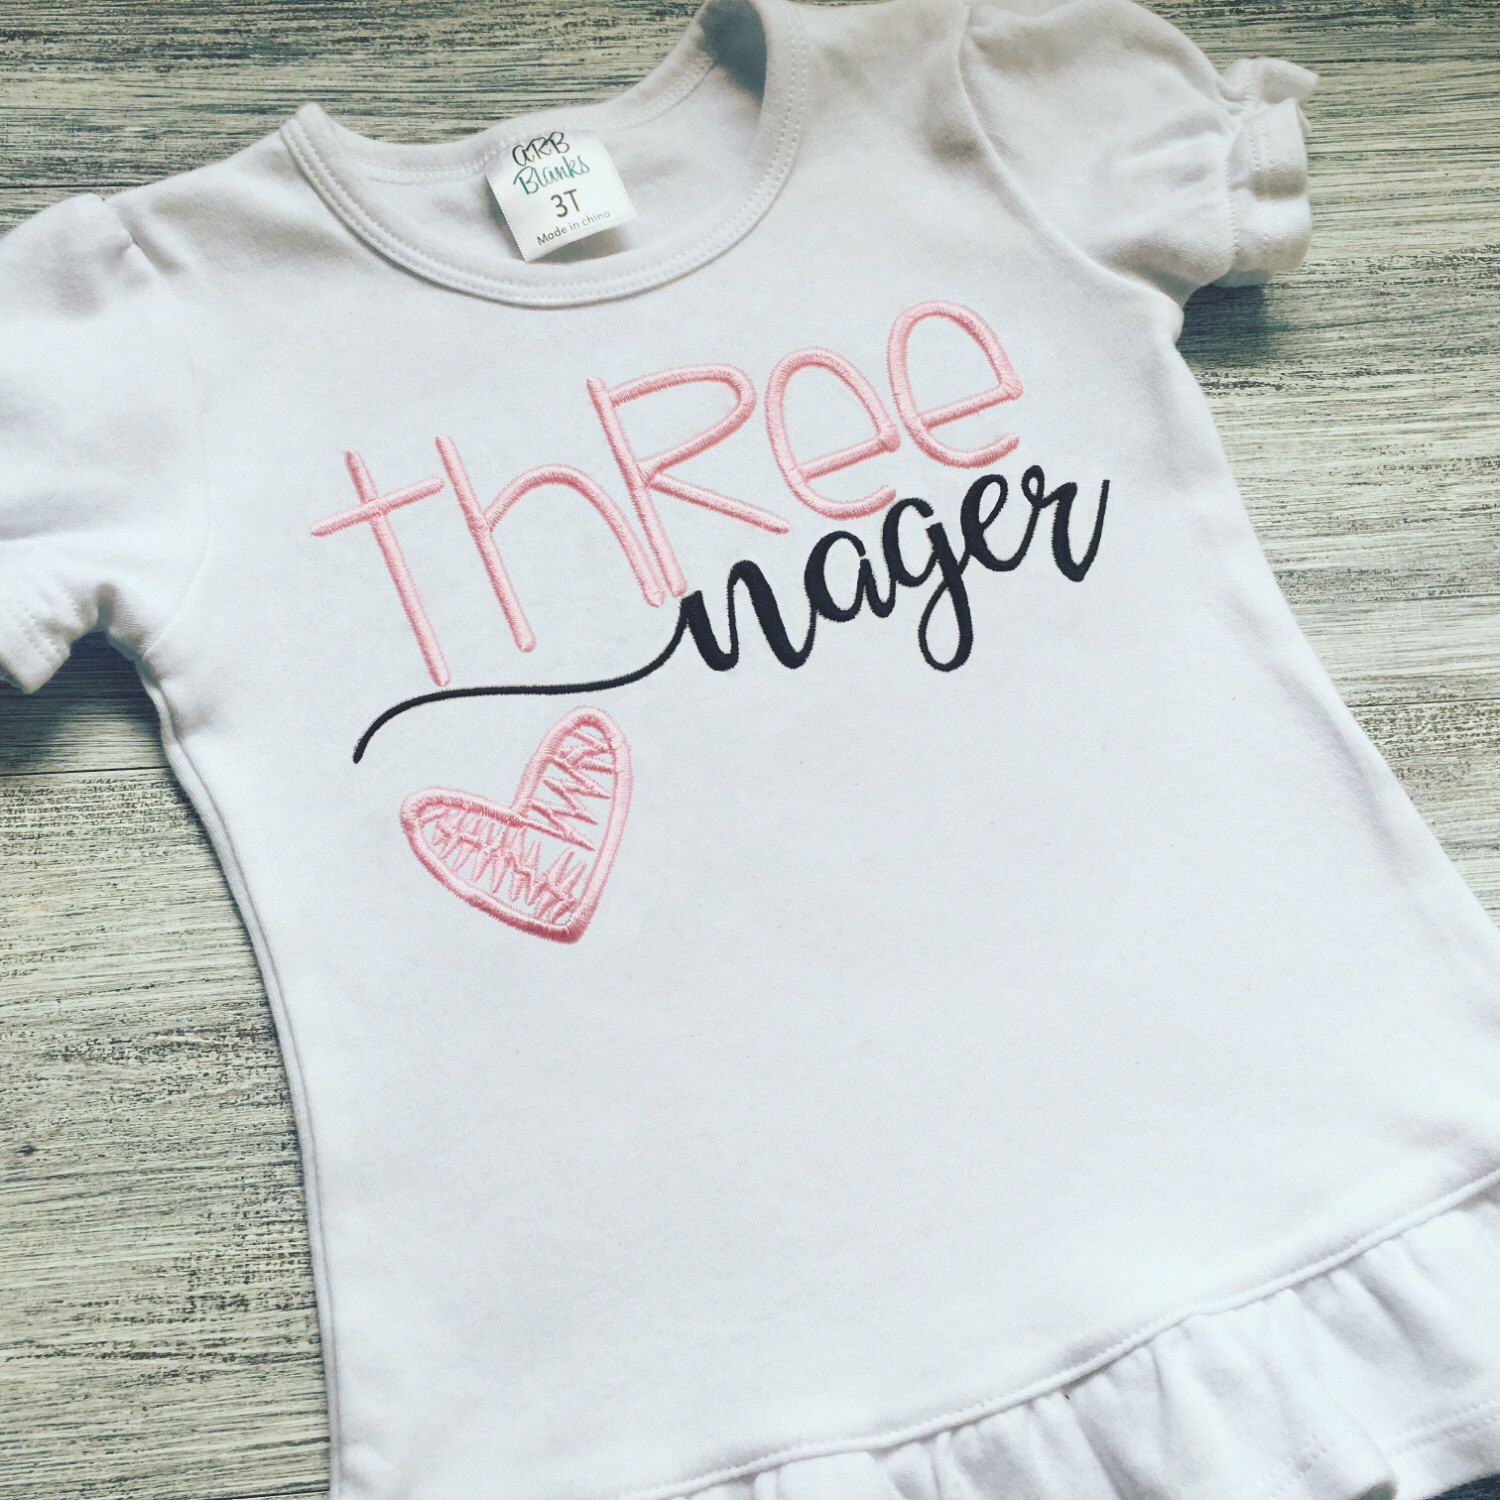 cddfa9aae Birthday Shirt - Threenager Shirt - Diva - Three Year Old Girl's Shirt…